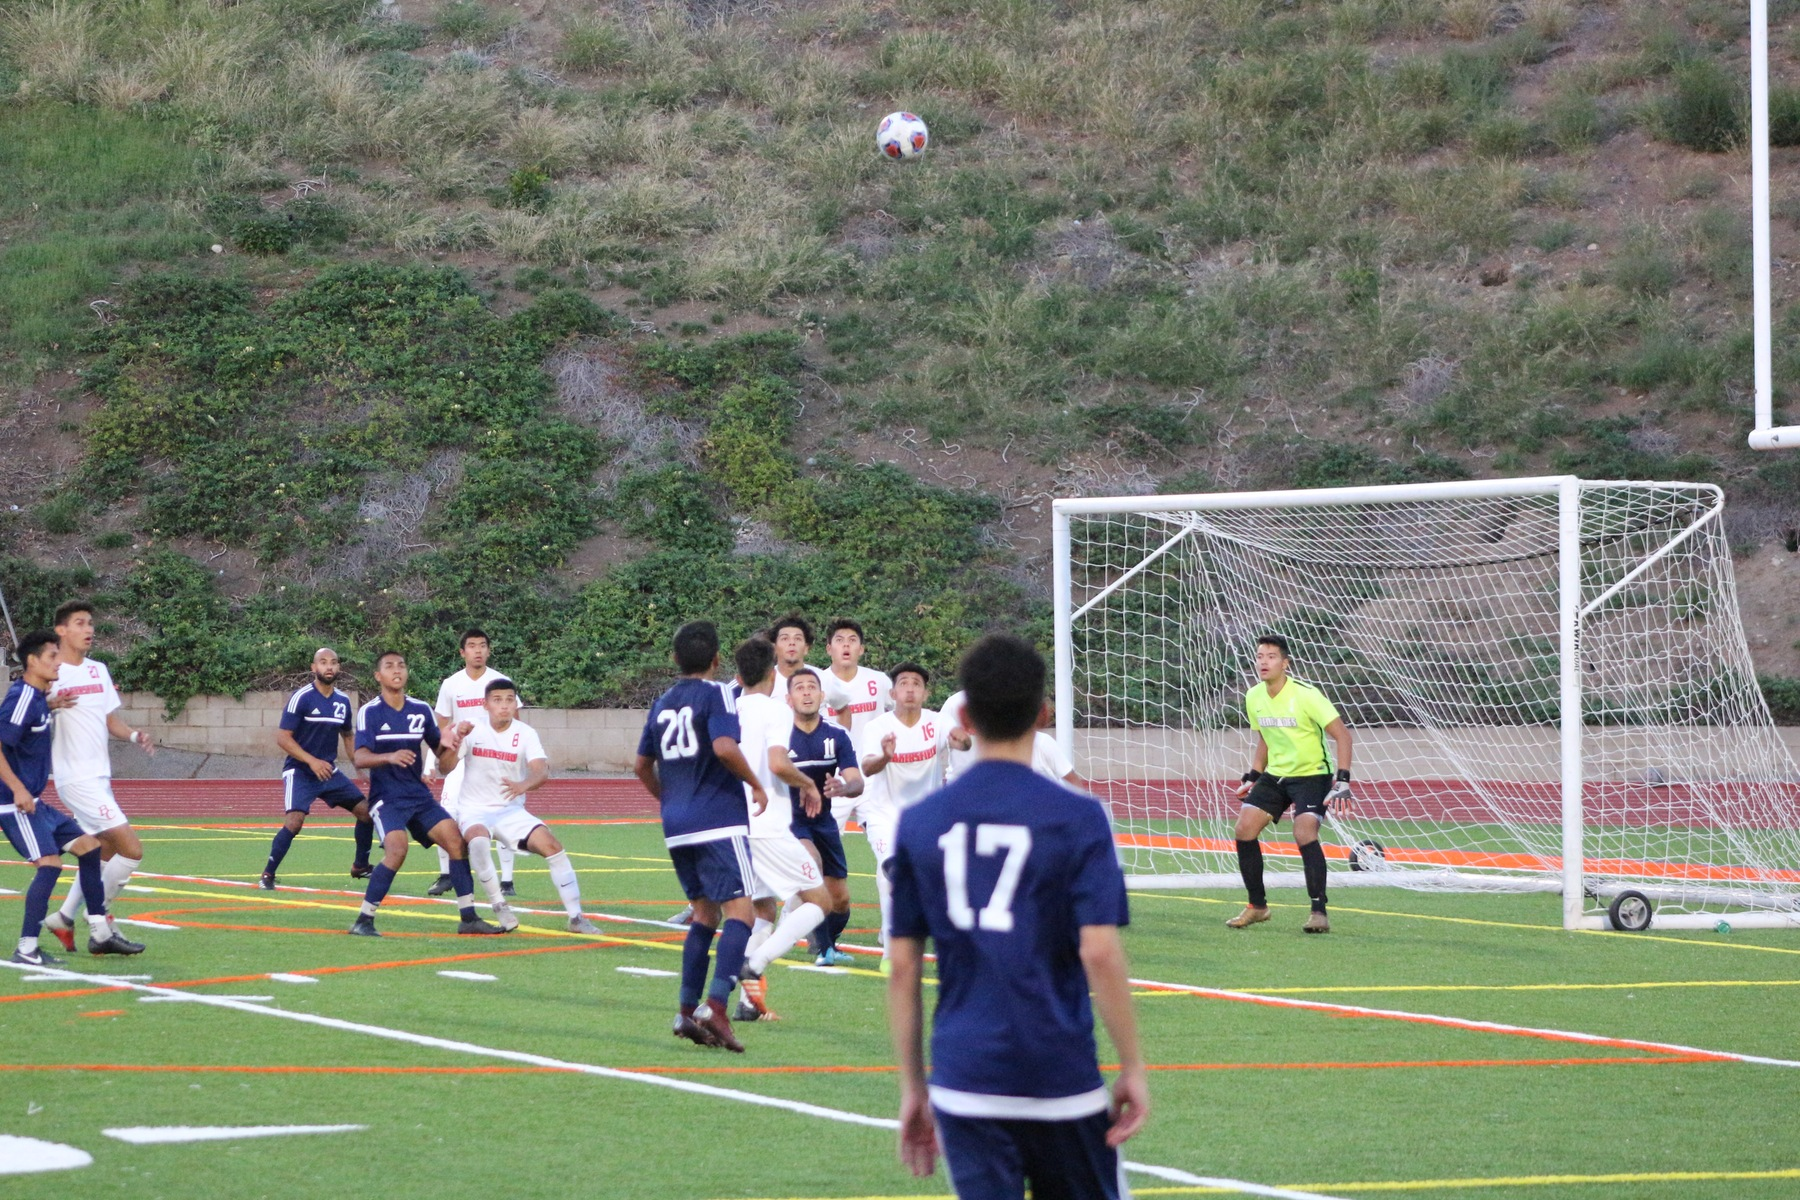 Patrick Luevano looks on as his throw-in approaches the Bakersfield goal. Image: Chris Peterson